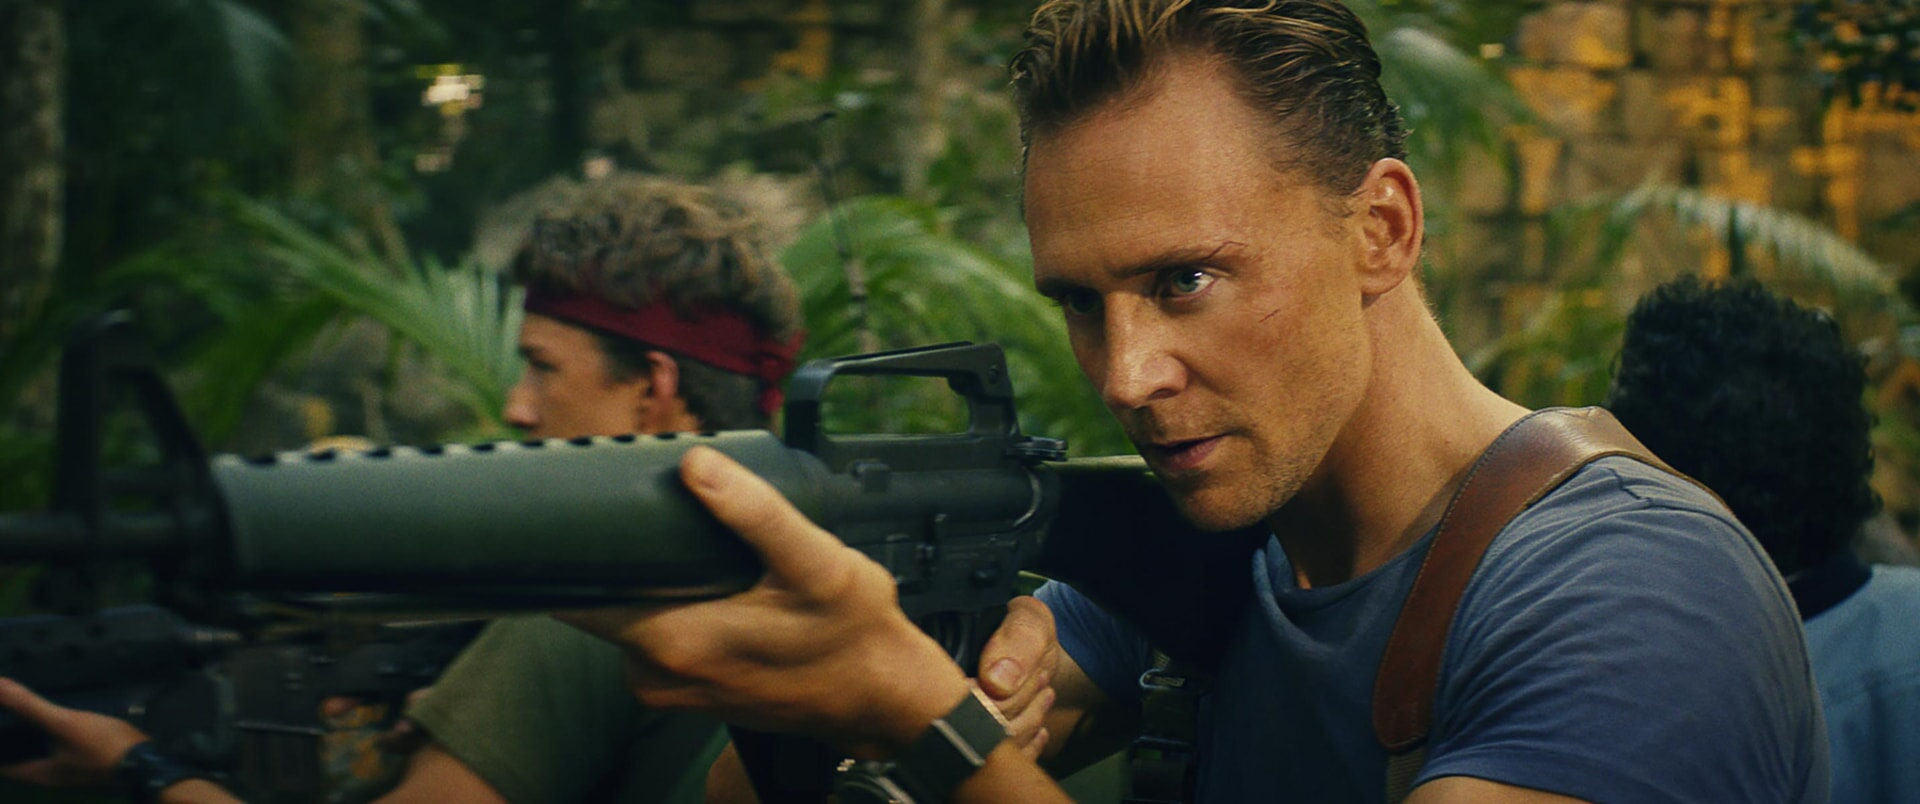 """THOMAS MANN as Slivko and TOM HIDDLESTON as James Conrad in Warner Bros. Pictures', Legendary Pictures' and Tencent Pictures' action adventure """"KONG: SKULL ISLAND,"""" a Warner Bros. Pictures release."""